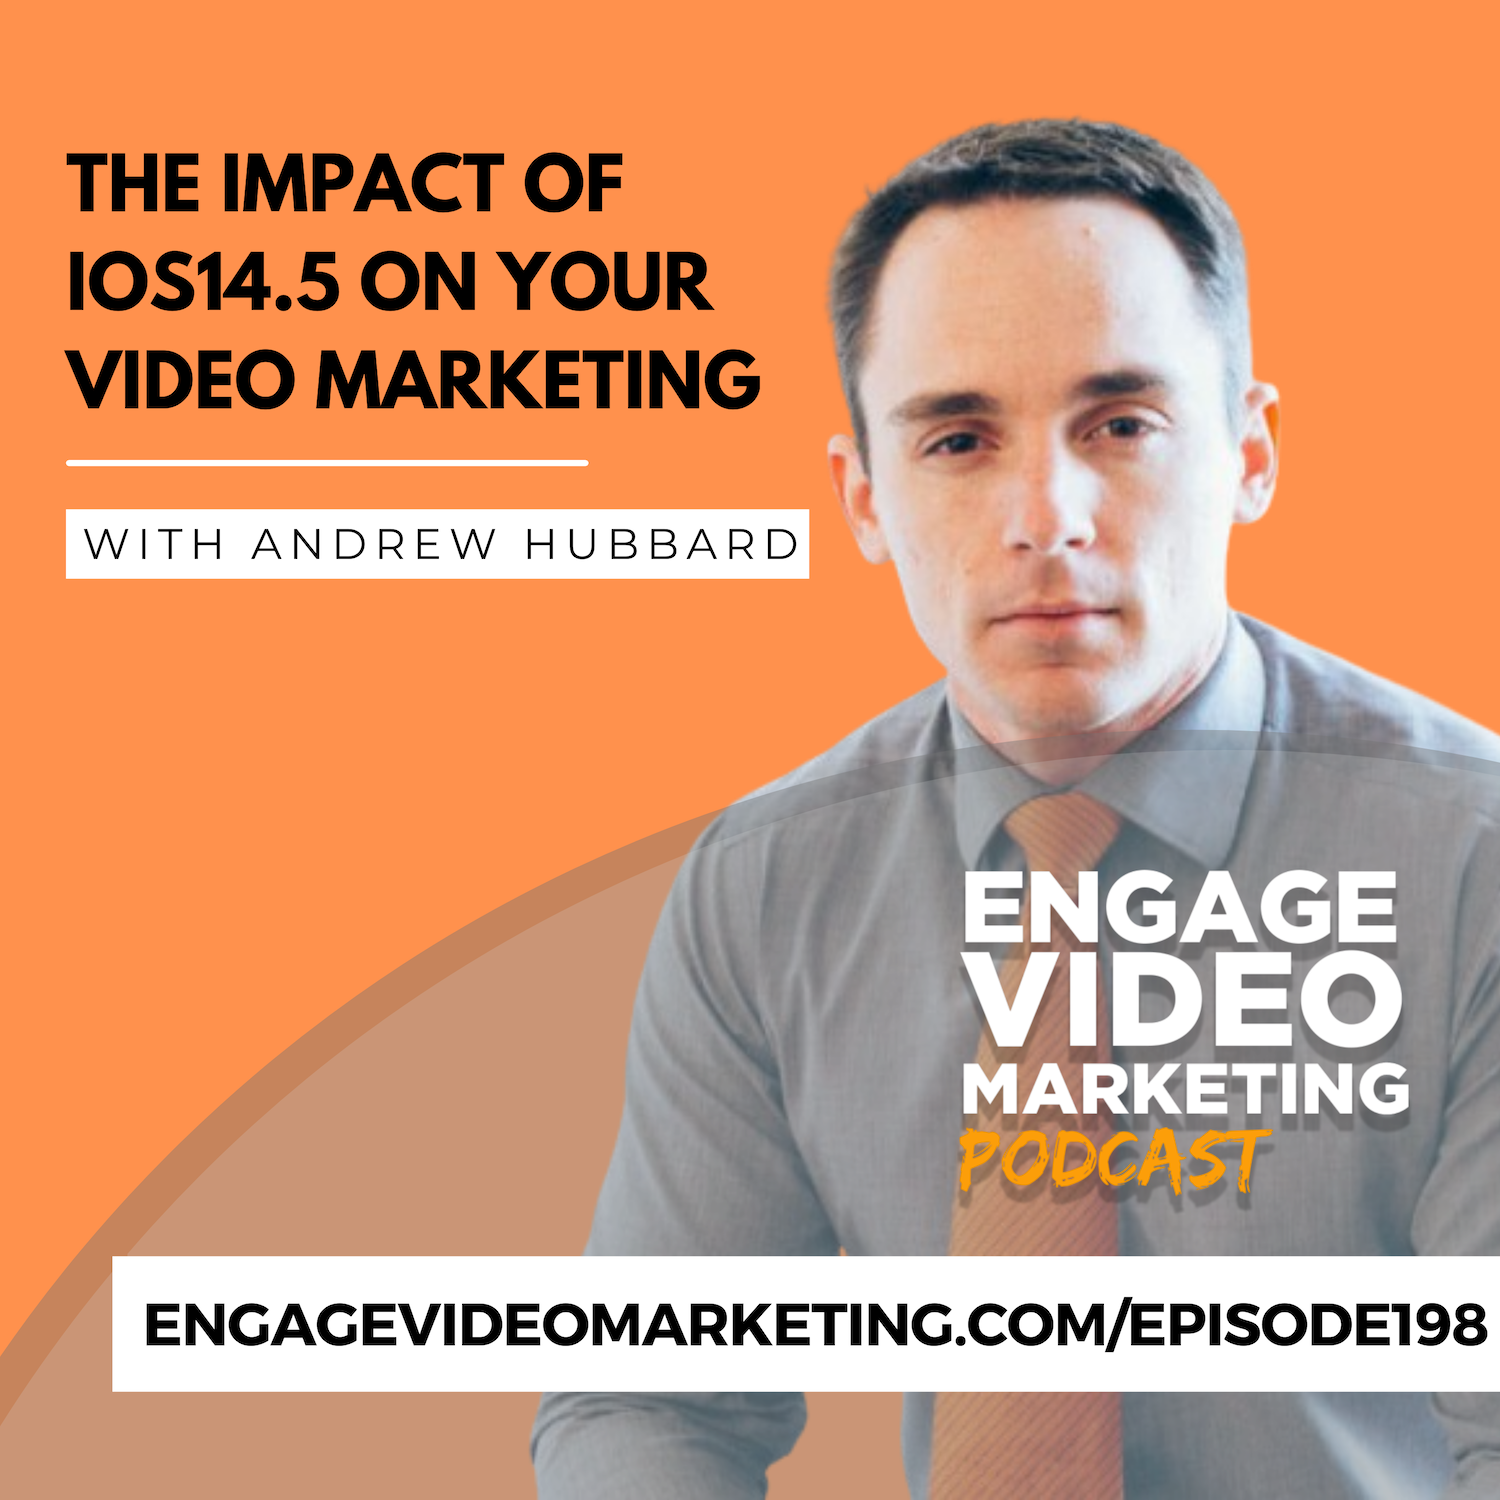 The Impact of iOS14.5 on Your Video Marketing with Andrew Hubbard